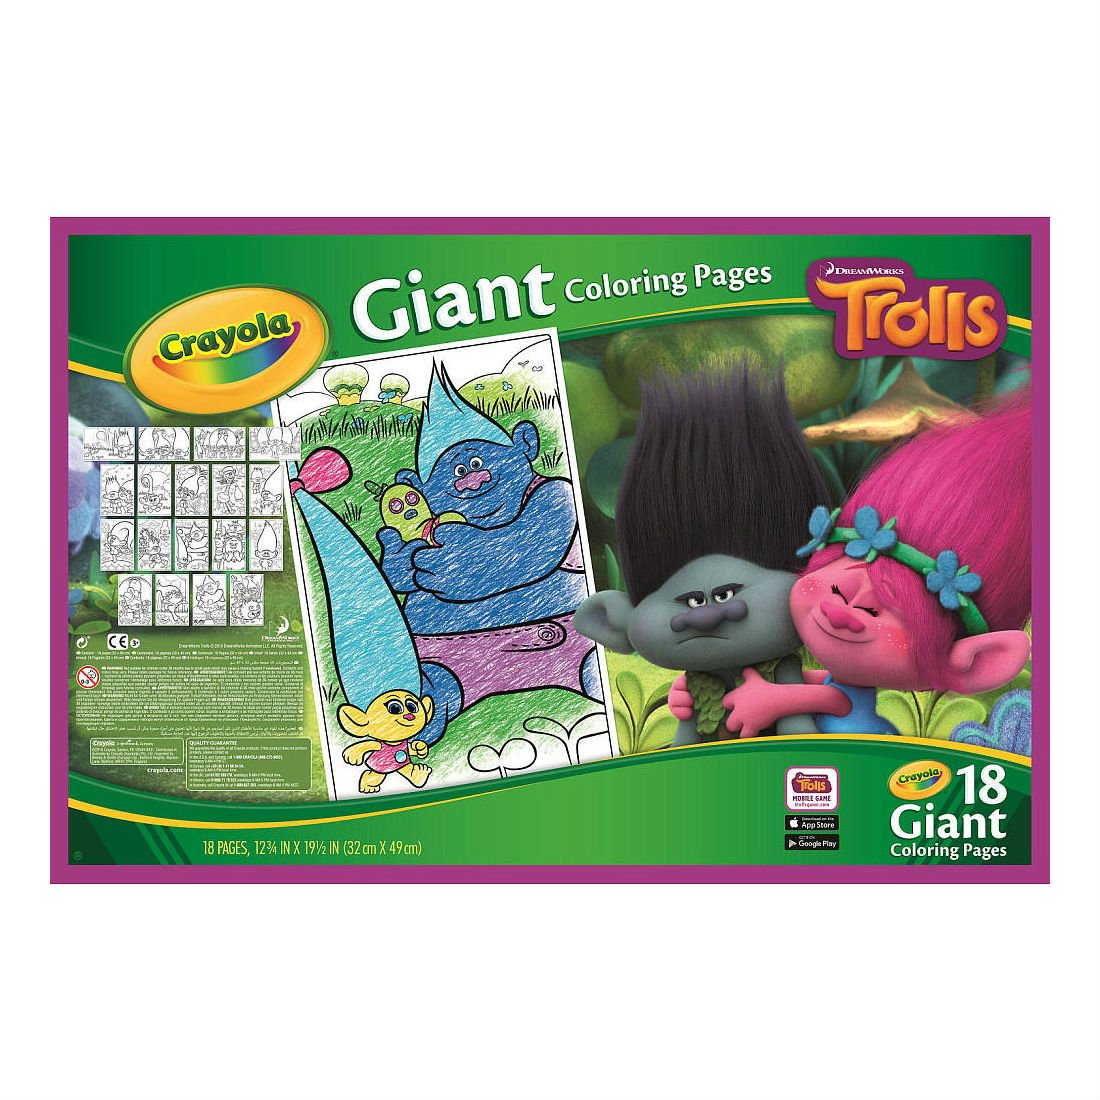 Amazon.com: Dreamworks Trolls Giant Coloring Pages Us seller: Toys ...